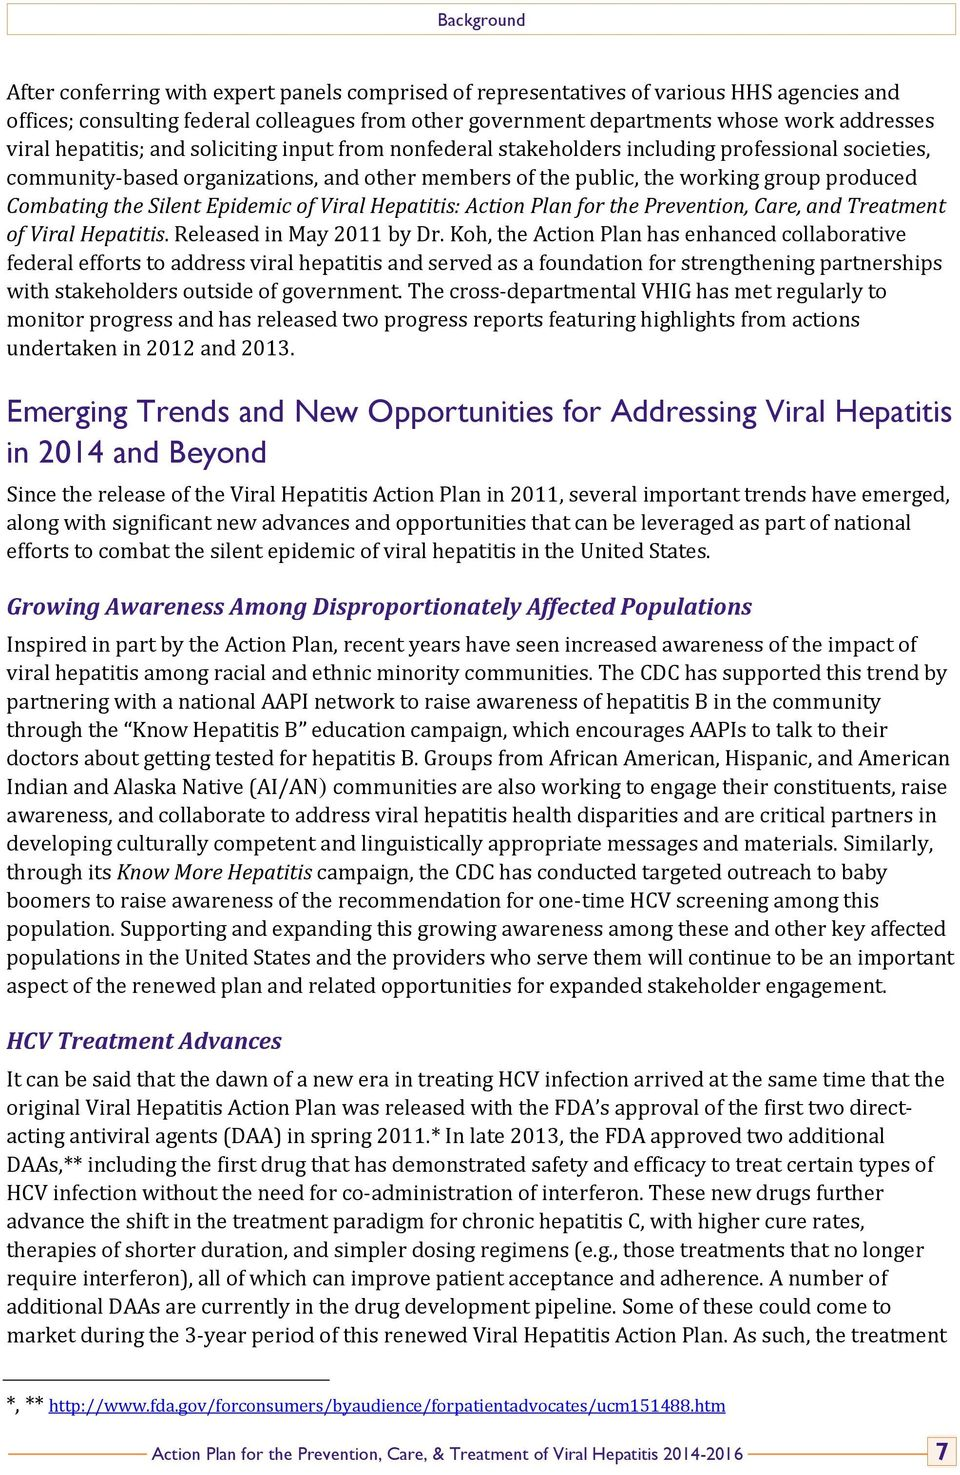 Combating the Silent Epidemic of Viral Hepatitis: Action Plan for the Prevention, Care, and Treatment of Viral Hepatitis. Released in May 2011 by Dr.